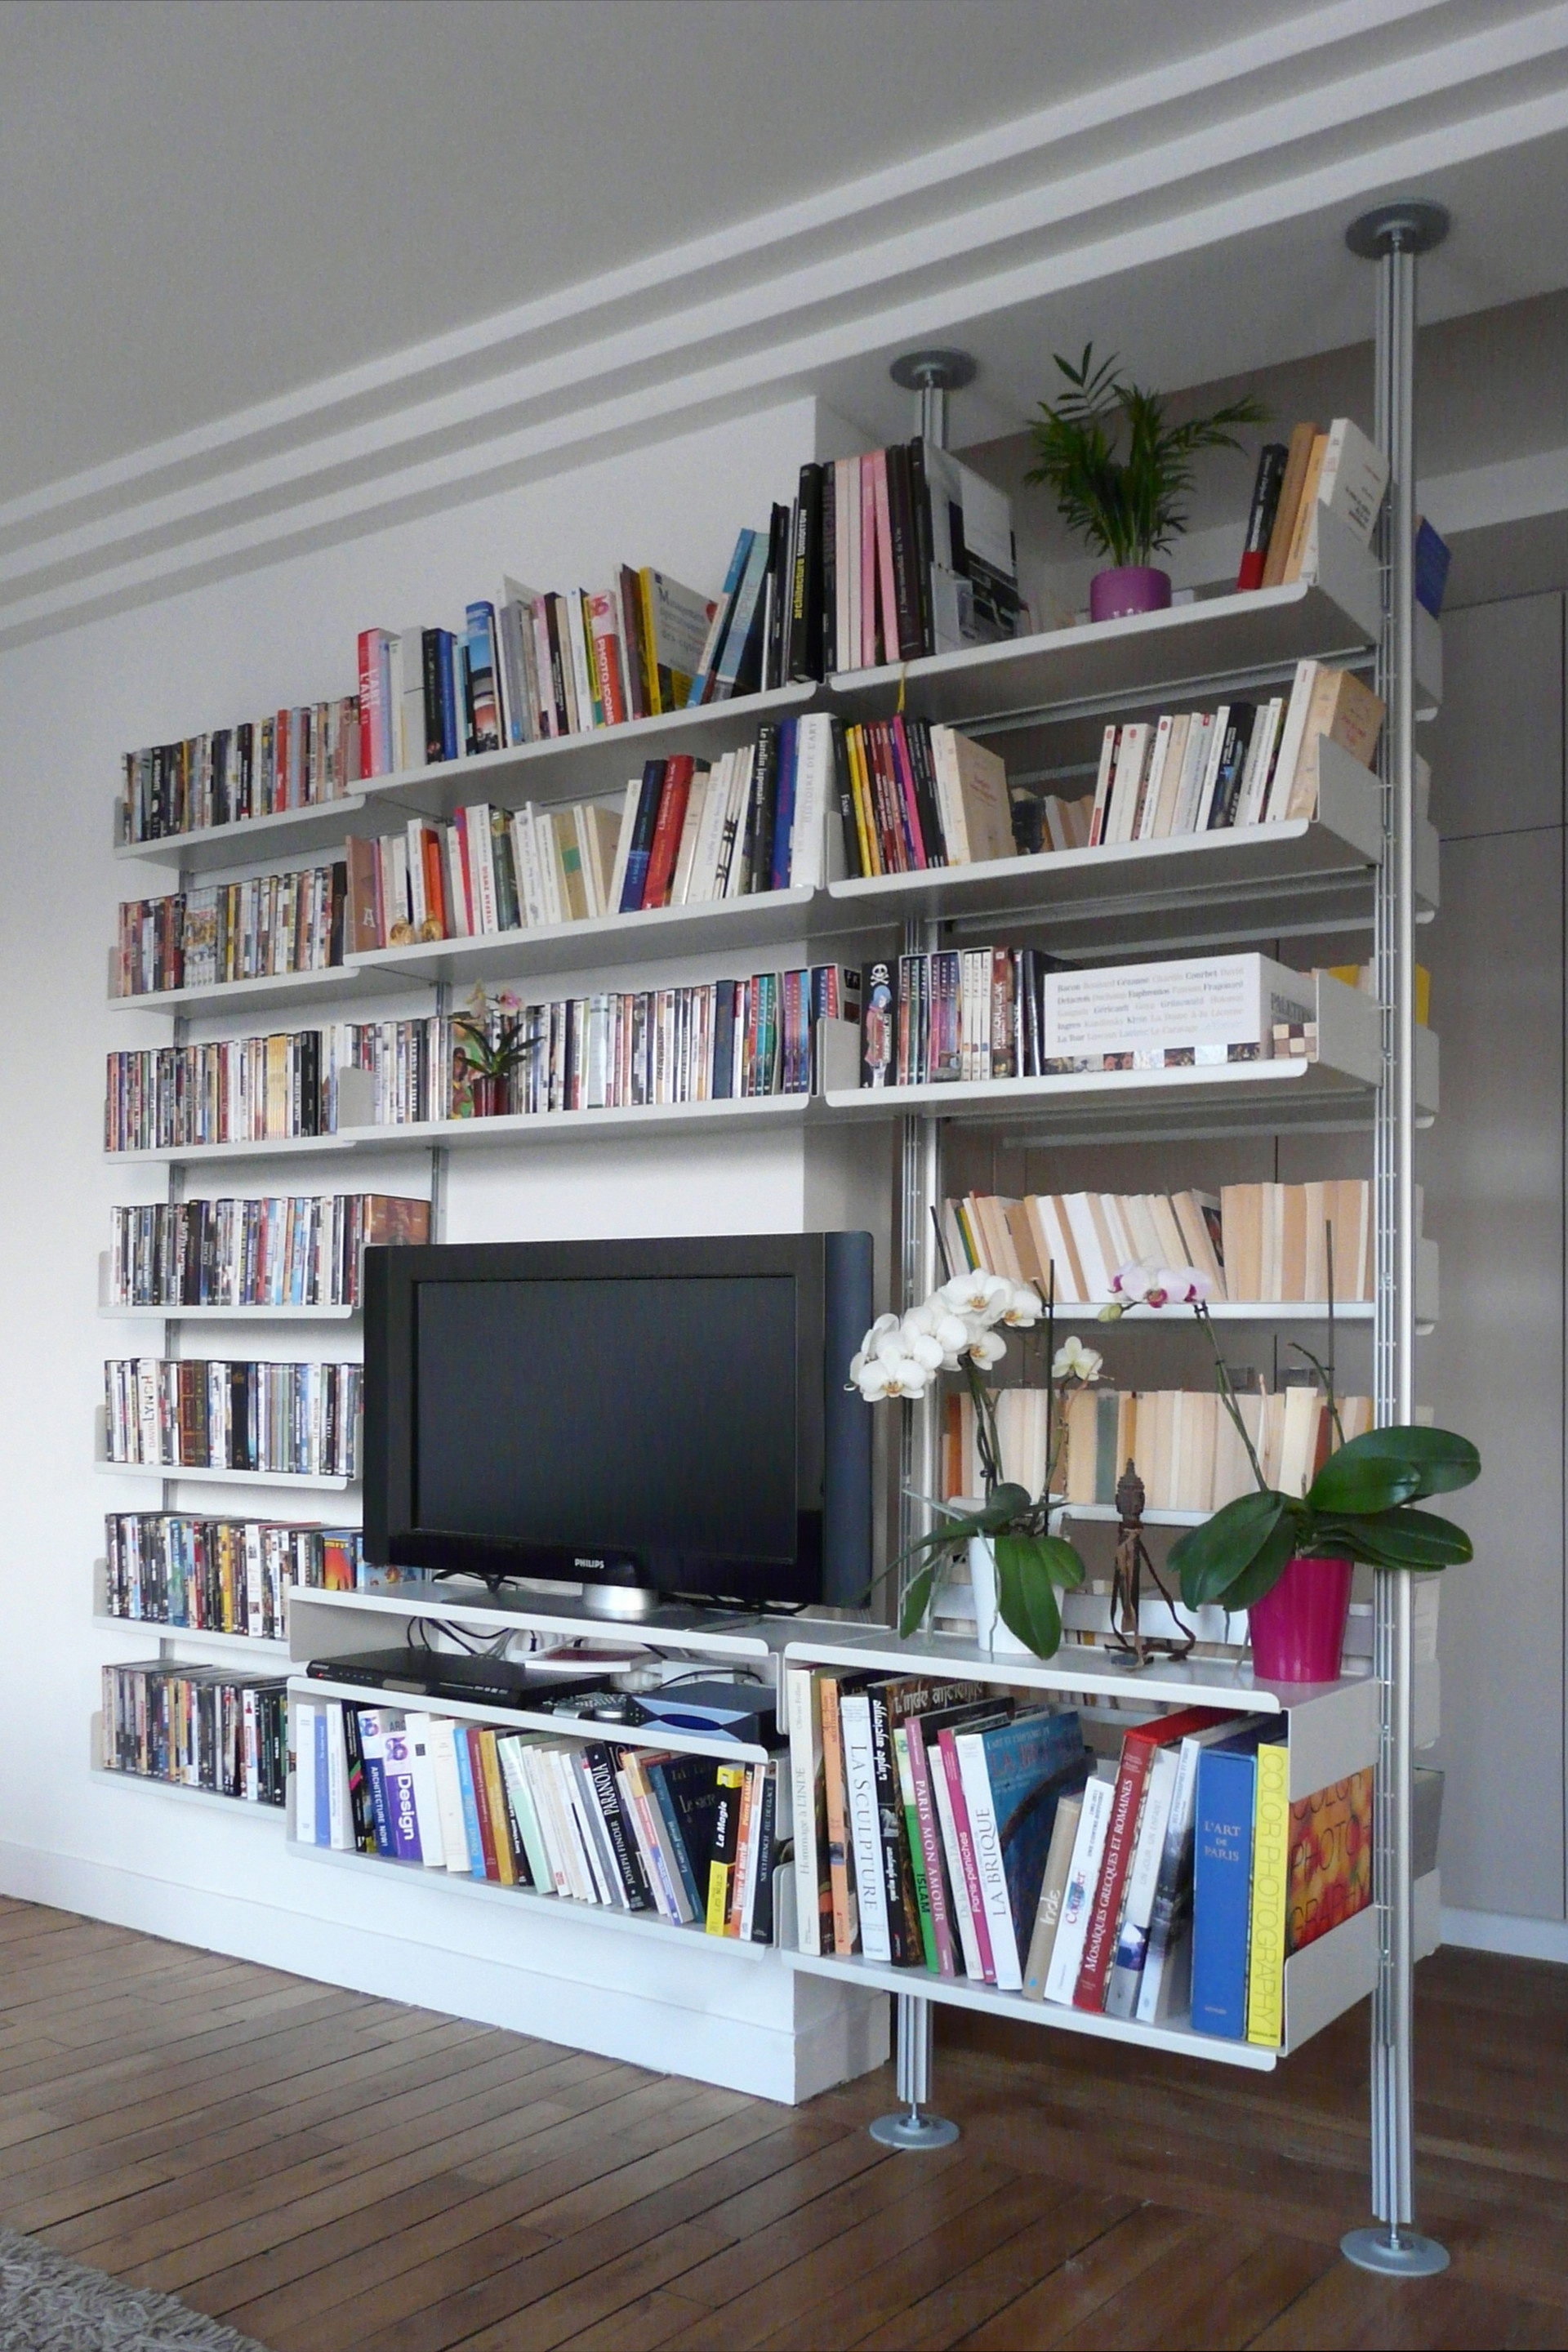 Shelves run on when walls run out: this system moves from wall-mounted on the left to compressed on the right. Clever